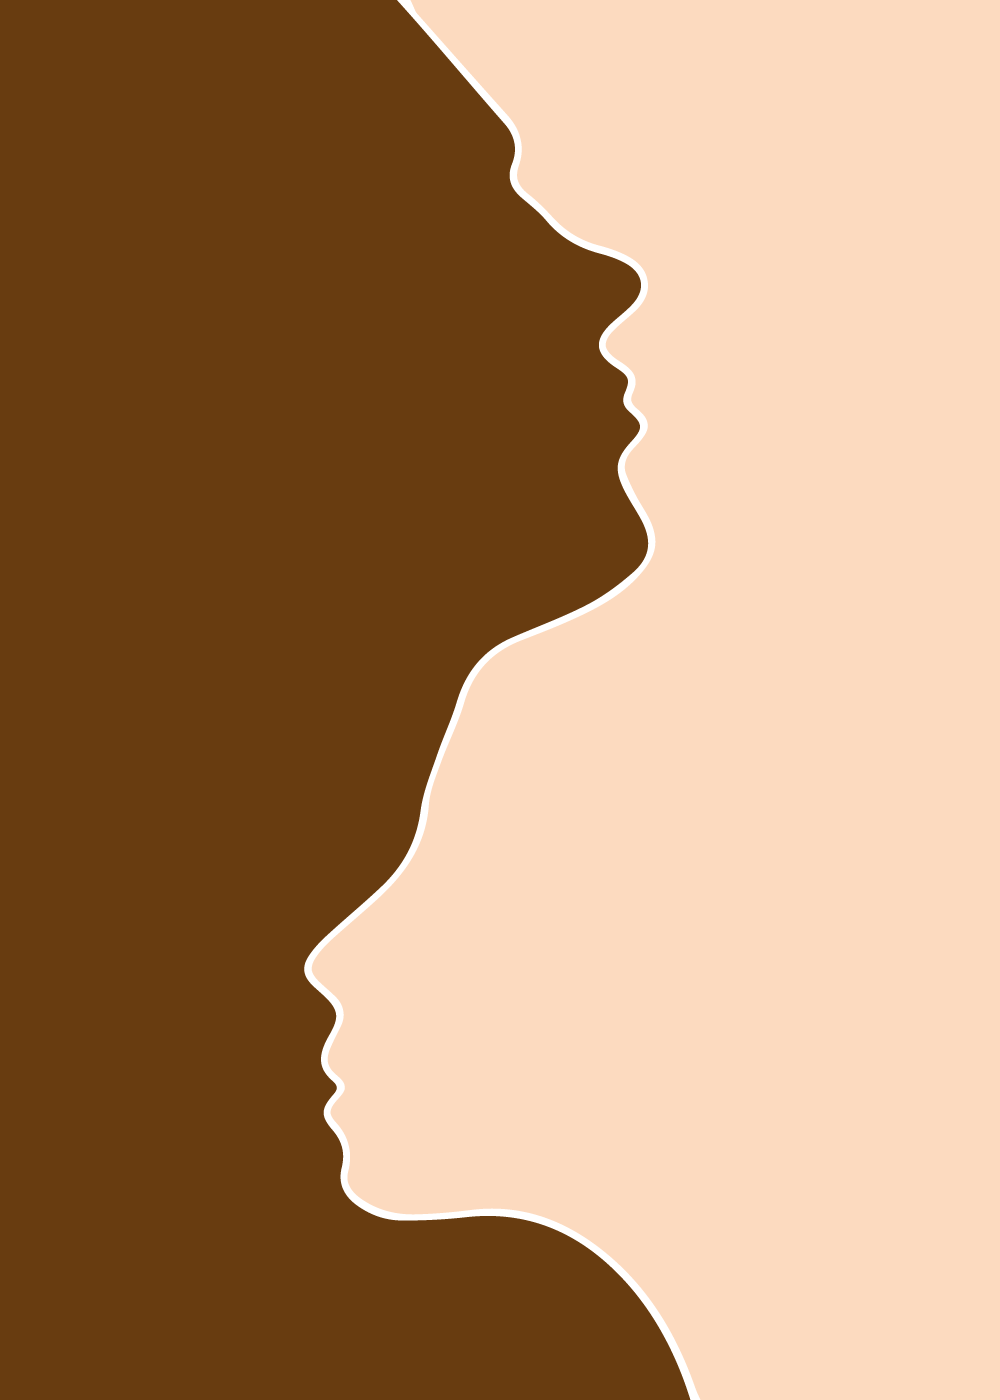 We are all the same - plakat